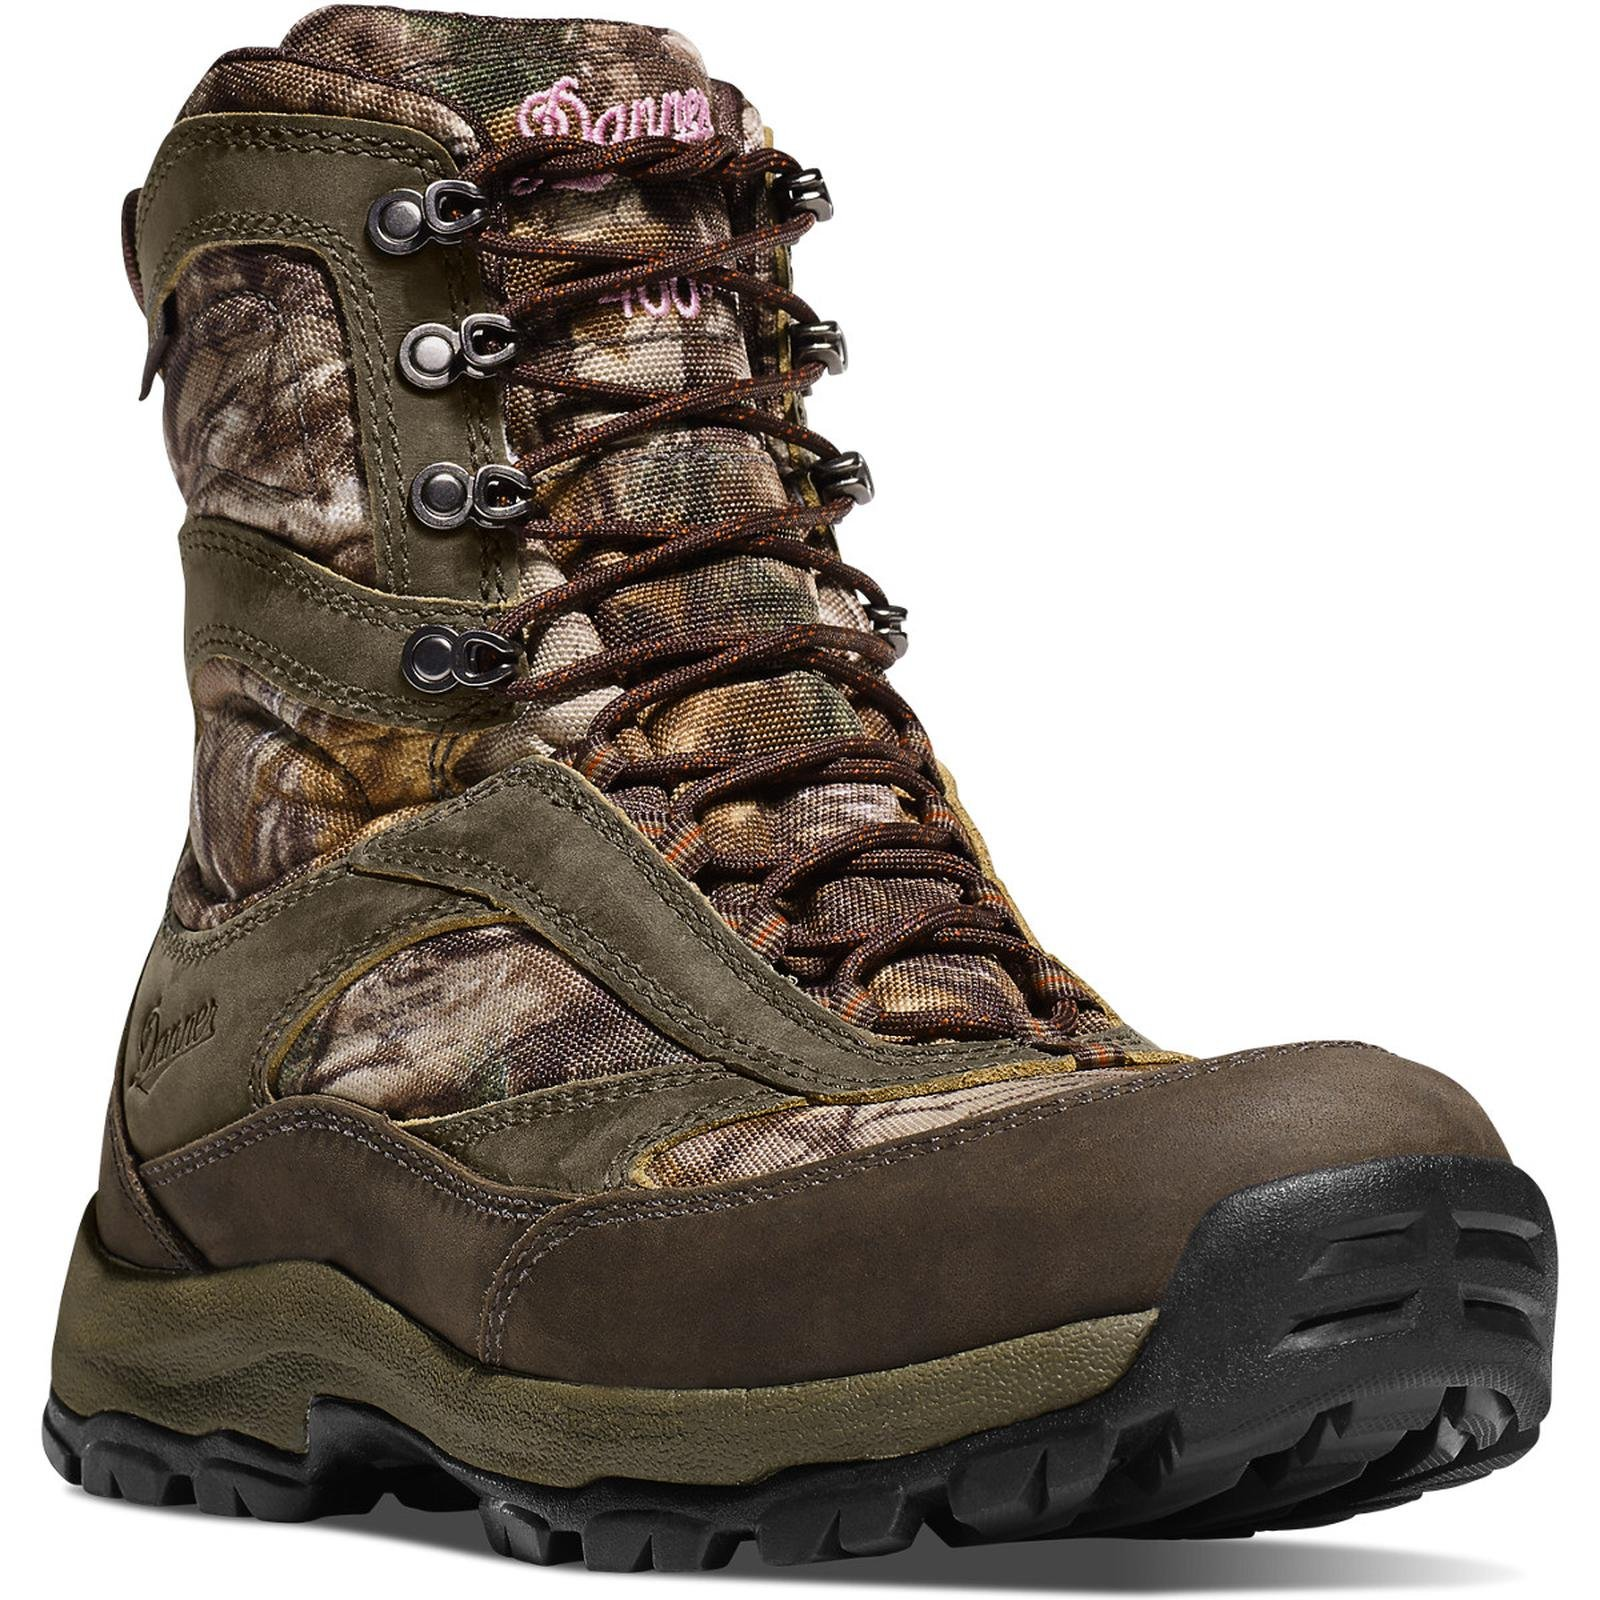 Danner Women's High Ground Realtree Xtra Hunting Boot,Brown/Green,9.5 M US